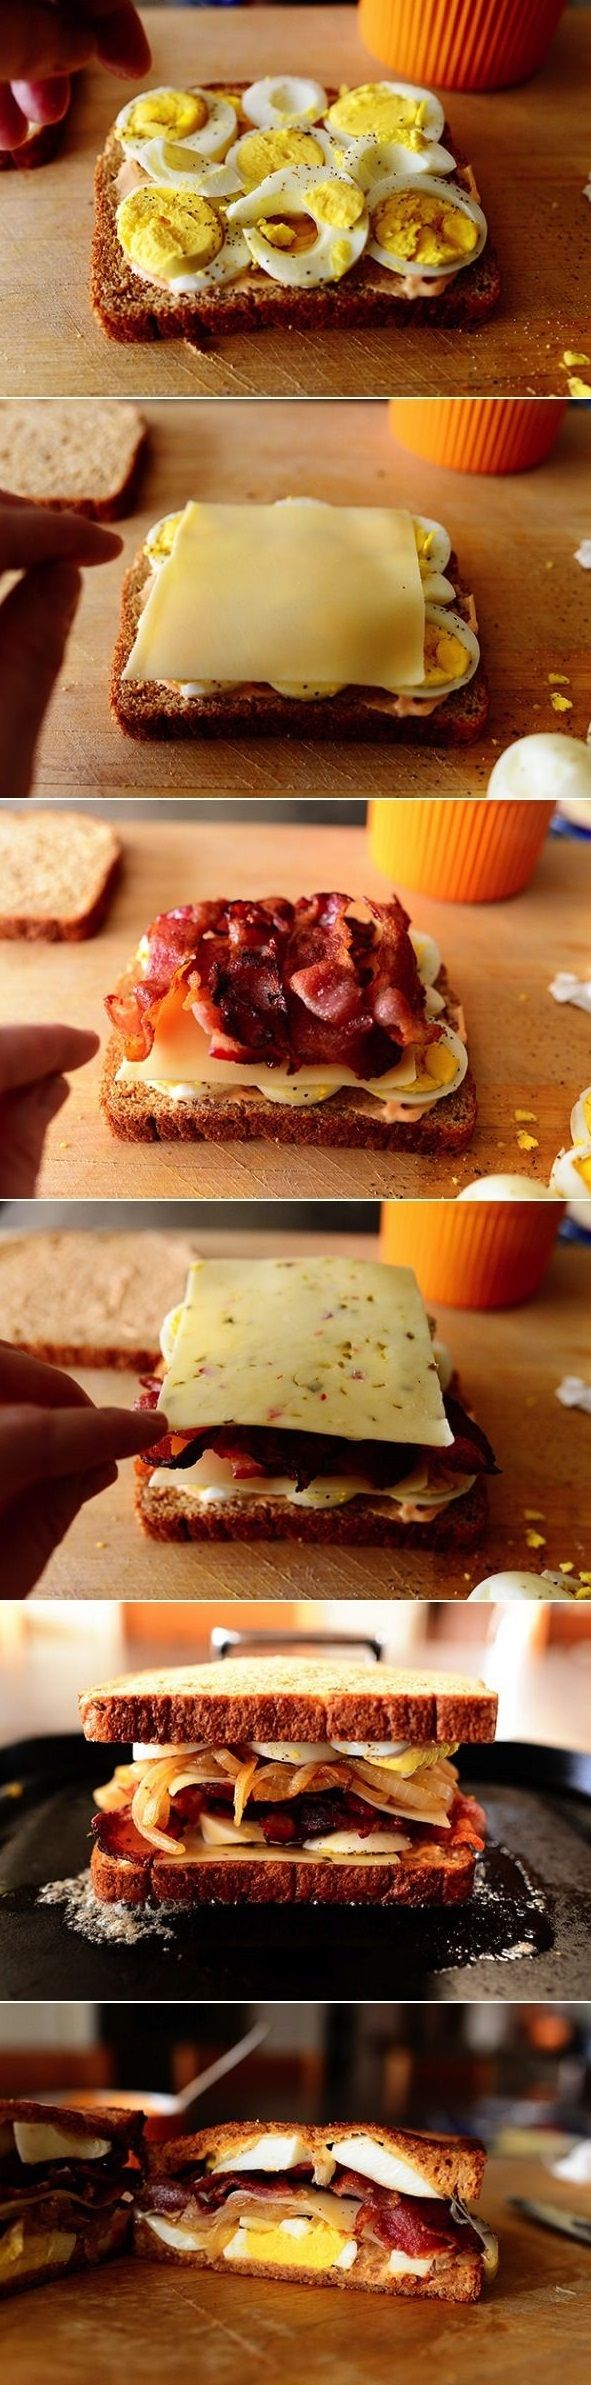 Ultimate Grilled Cheese Sandwich Ingredients 1 Tablespoon Butter 1 whole Medium Onion, Halved And Sliced 4 slices Bacon, Cut In Half 2 Tablespoons Mayonnaise Several Dashes Hot Sauce (I Used Louisi...